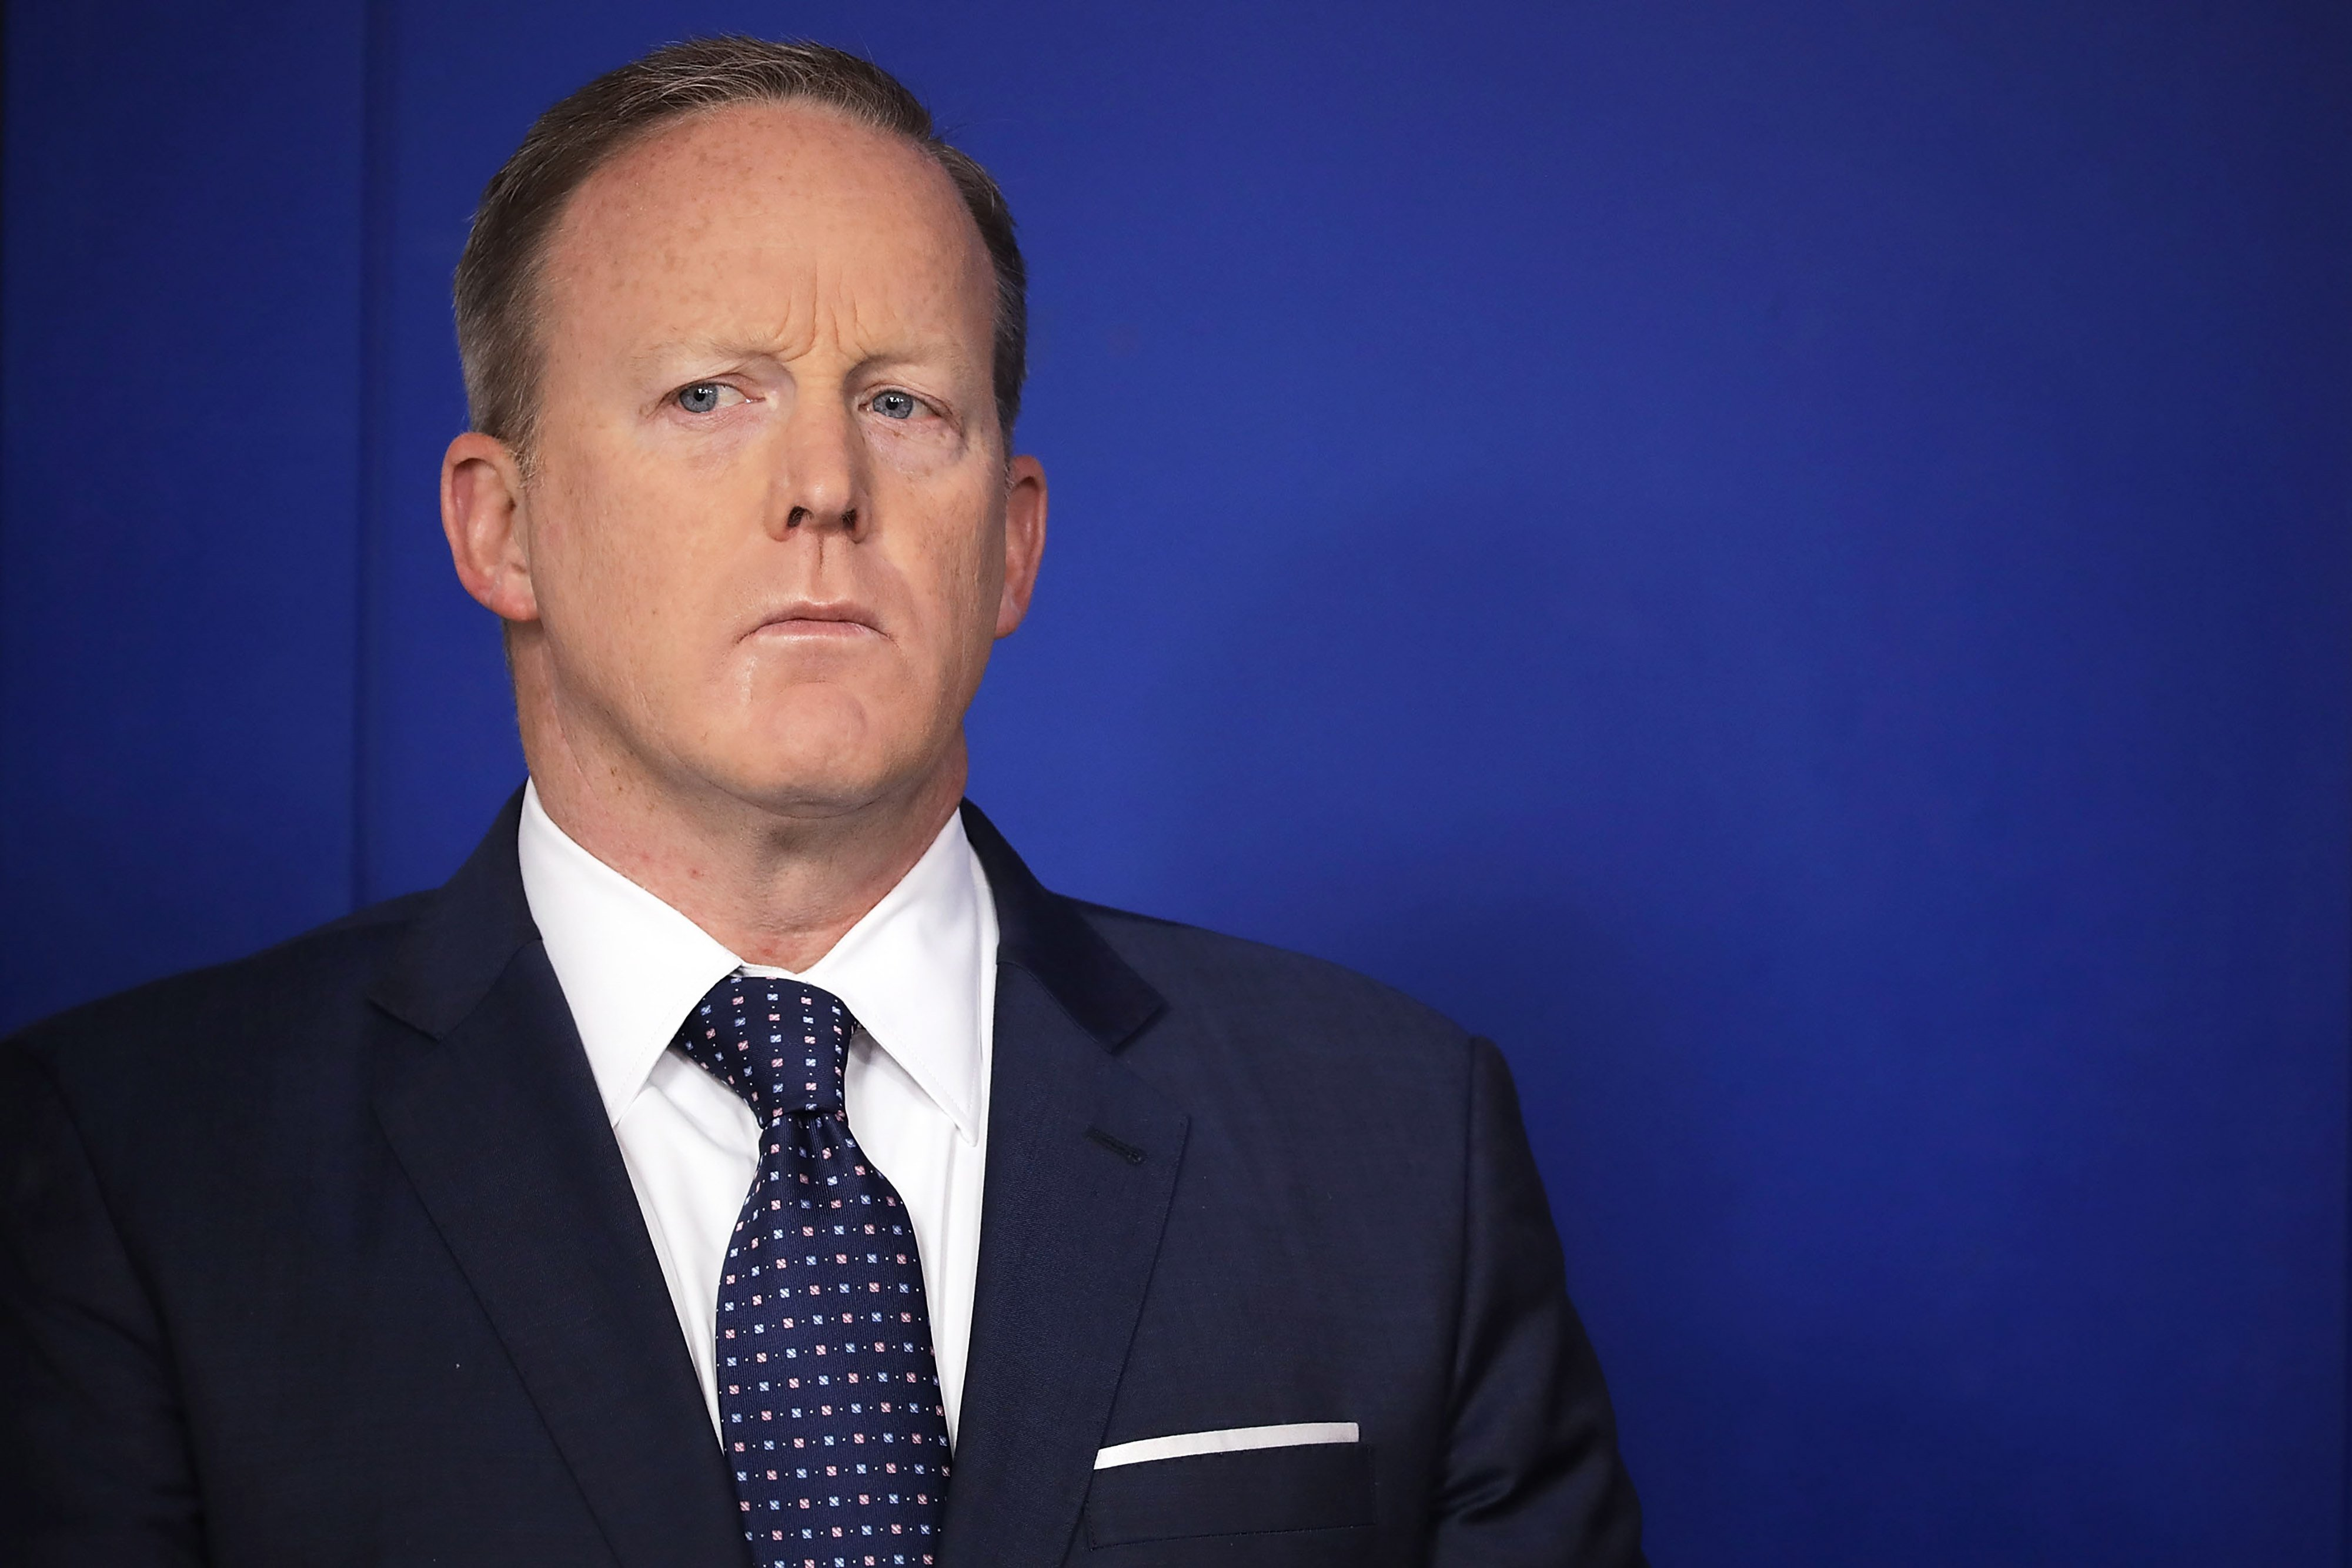 Sean Spicer on 'Dancing with the Stars?' ABC staffers say 'it's a slap in the face'